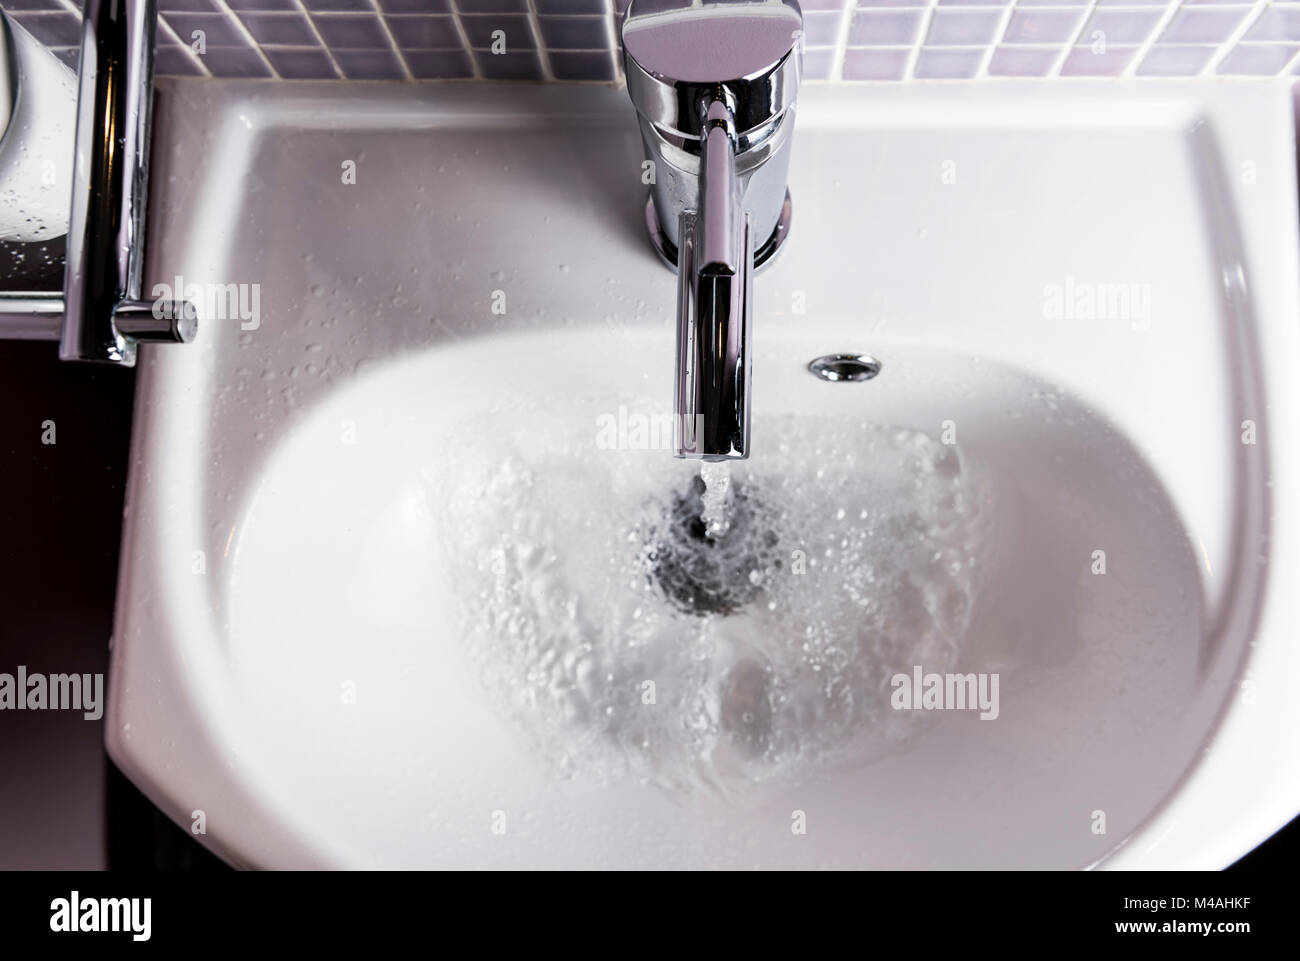 Water running from a bathroom tap or faucet, into a a hand basin. - Stock Image